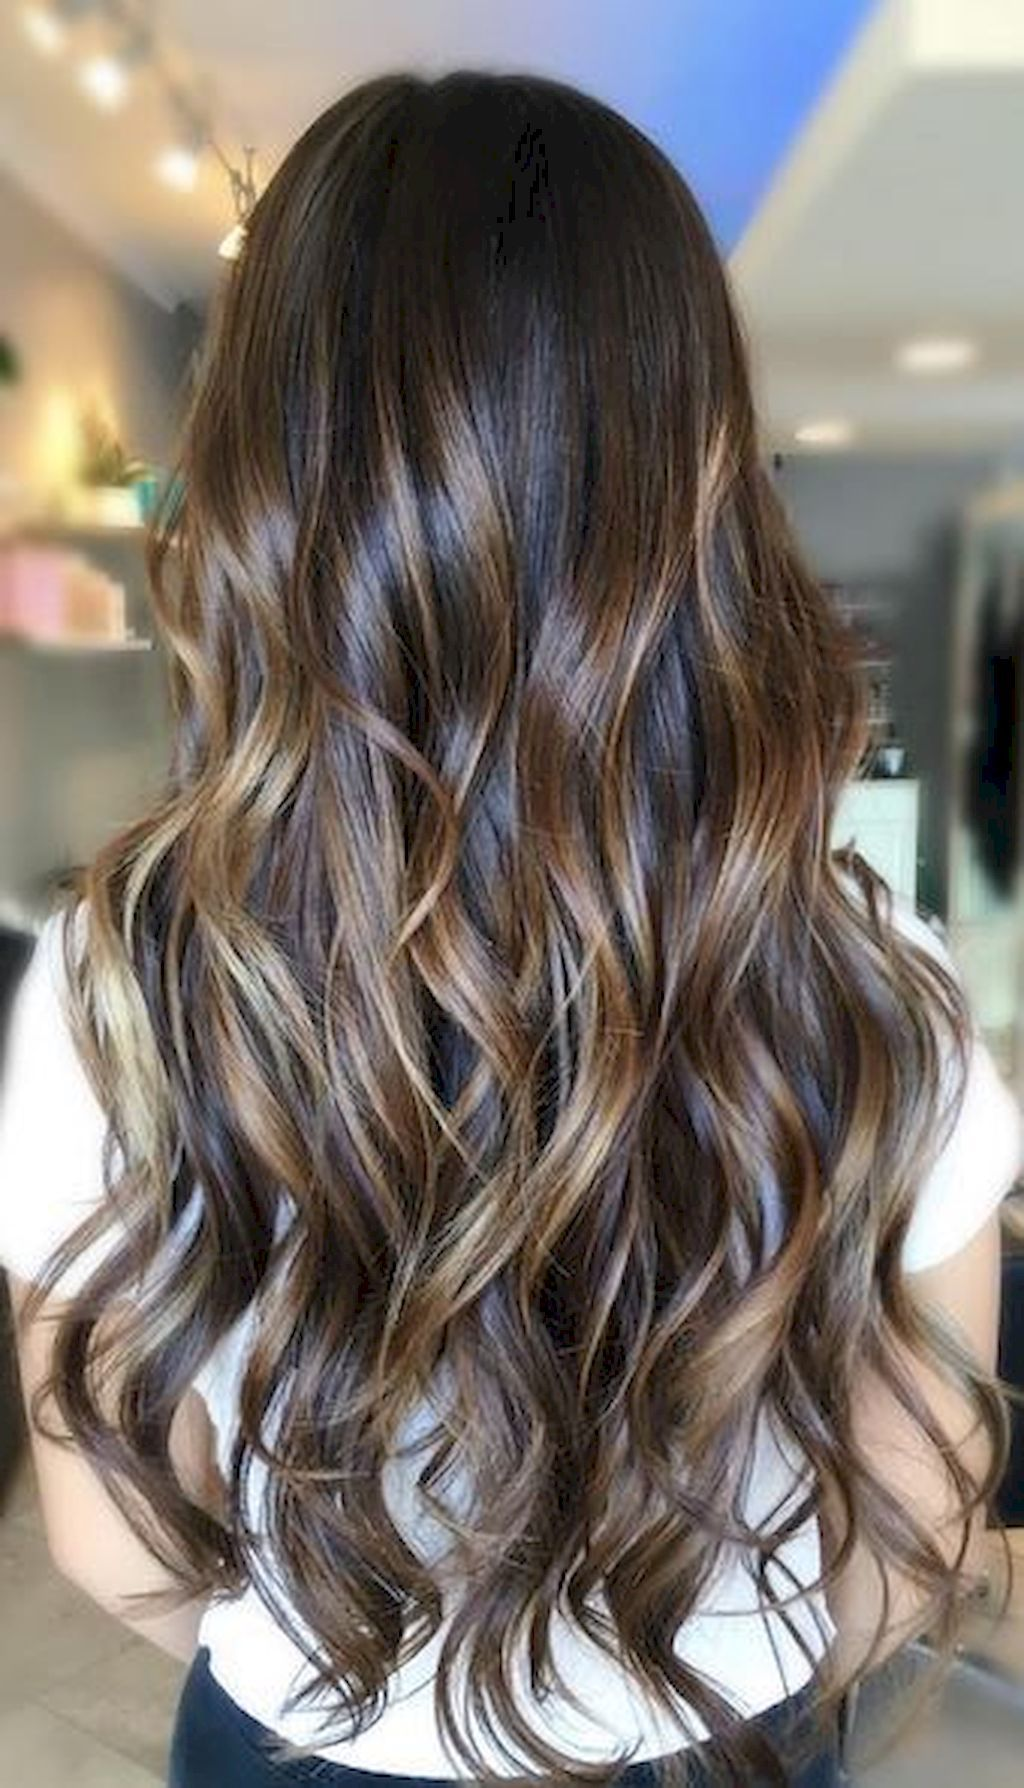 79 Hottest Balayage Hair Color Ideas For Brunettes Balayage Hair